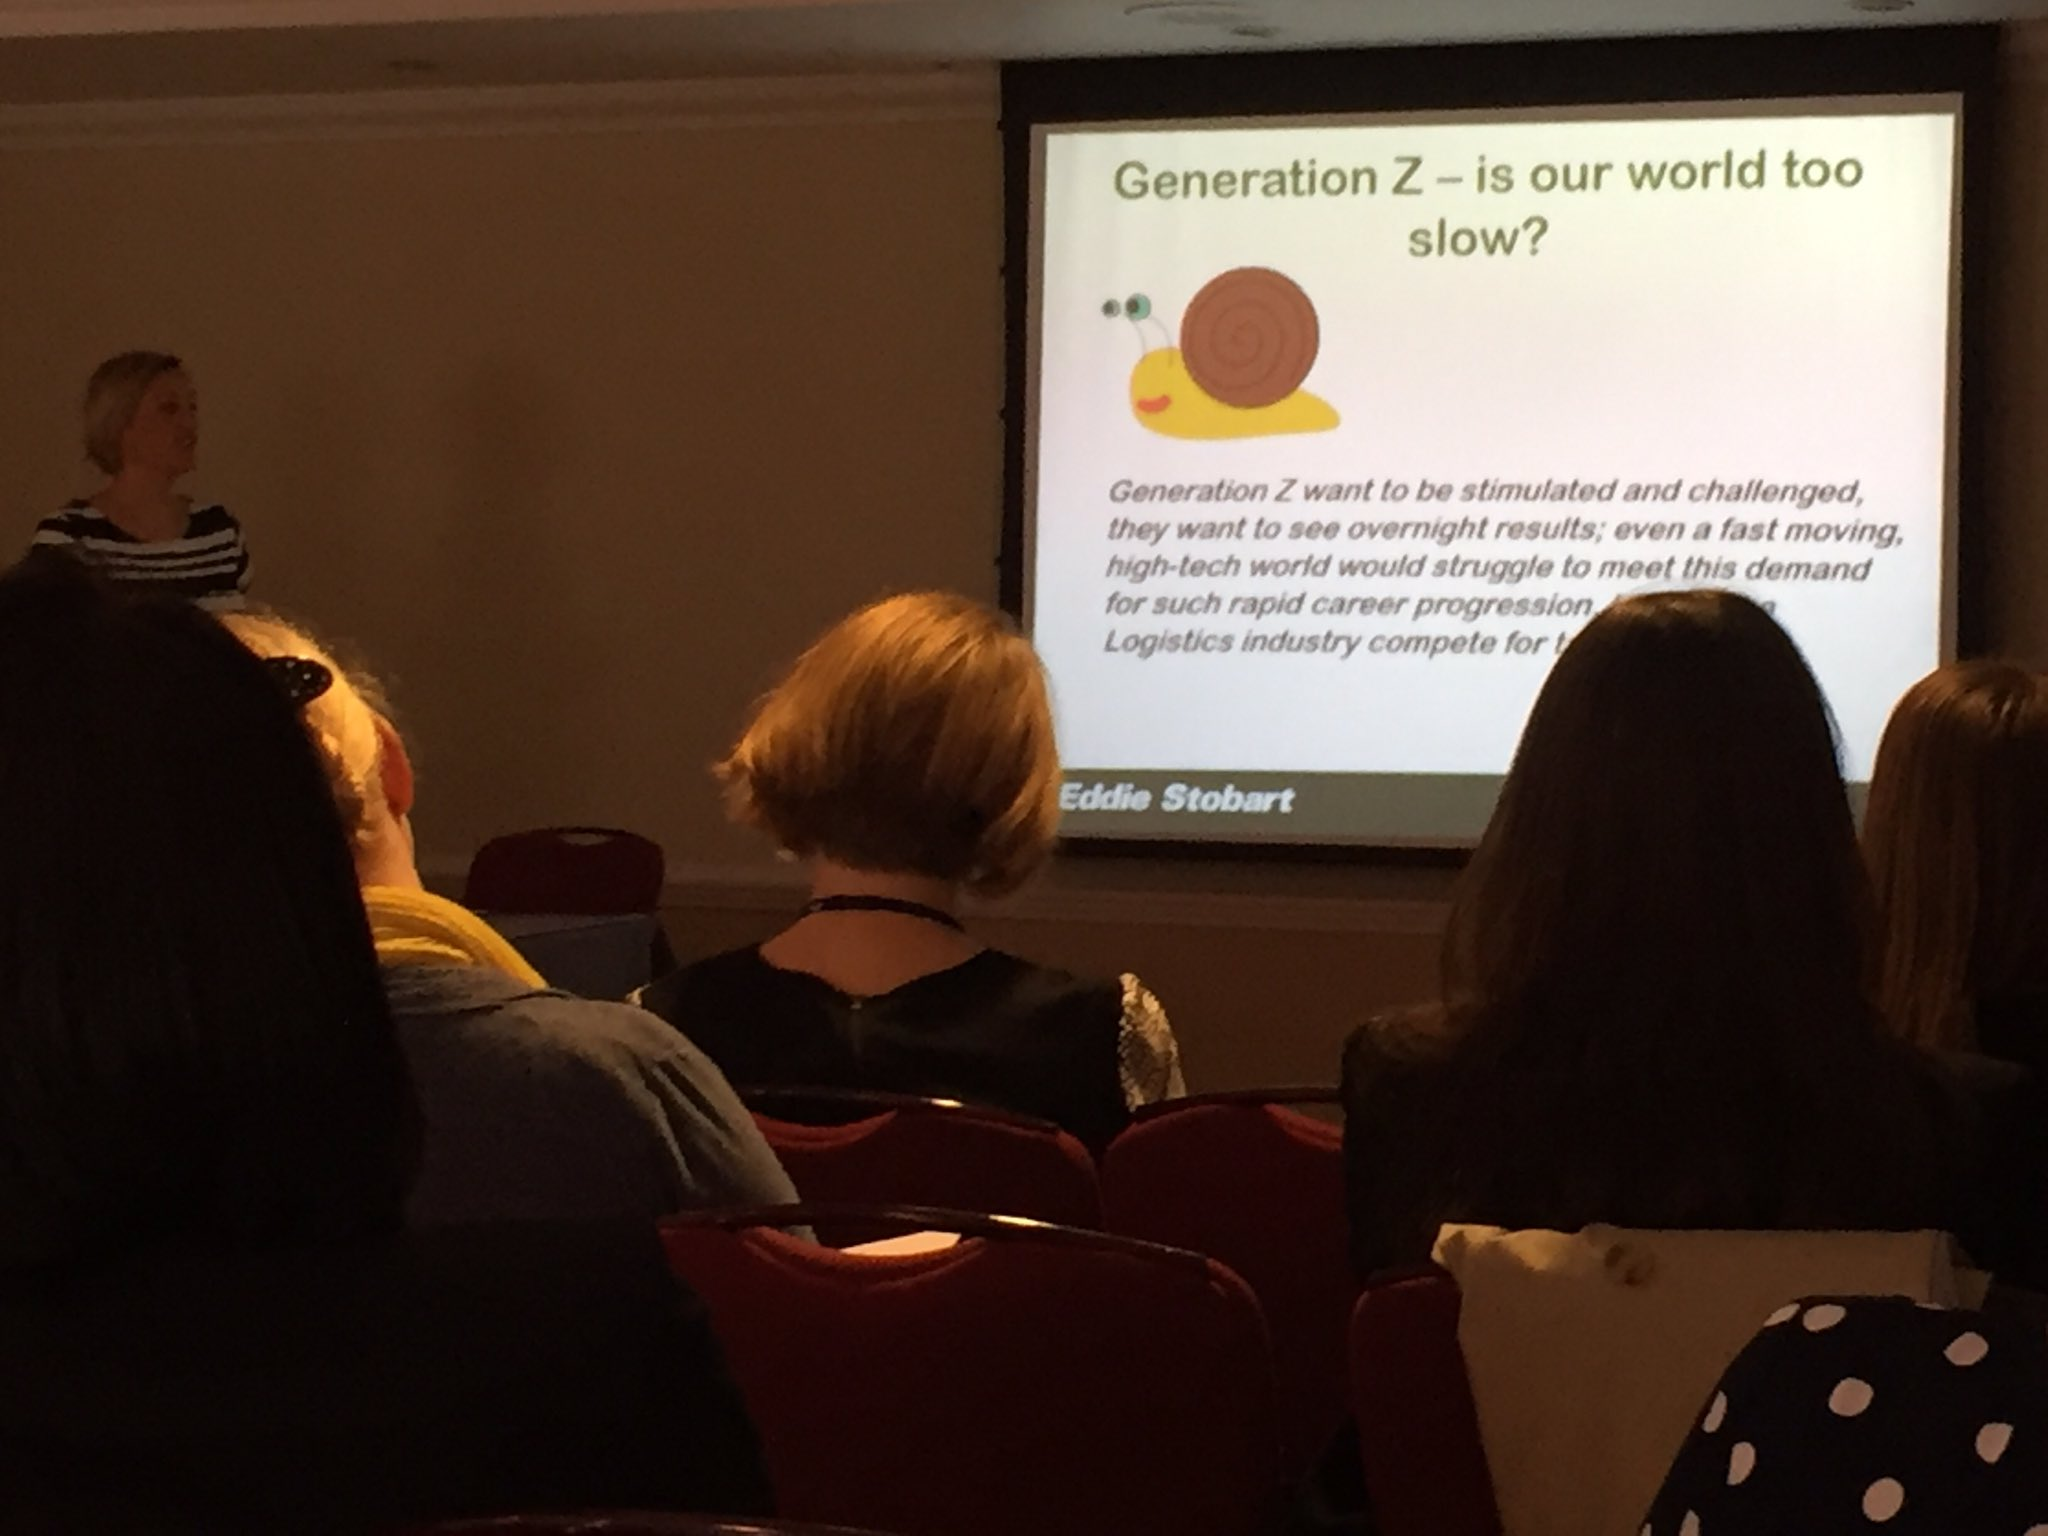 Questioning whether #logistics is too slow for Generation Z with @IsherwoodAmy at #wilconference16 https://t.co/U3yCNMjnTG